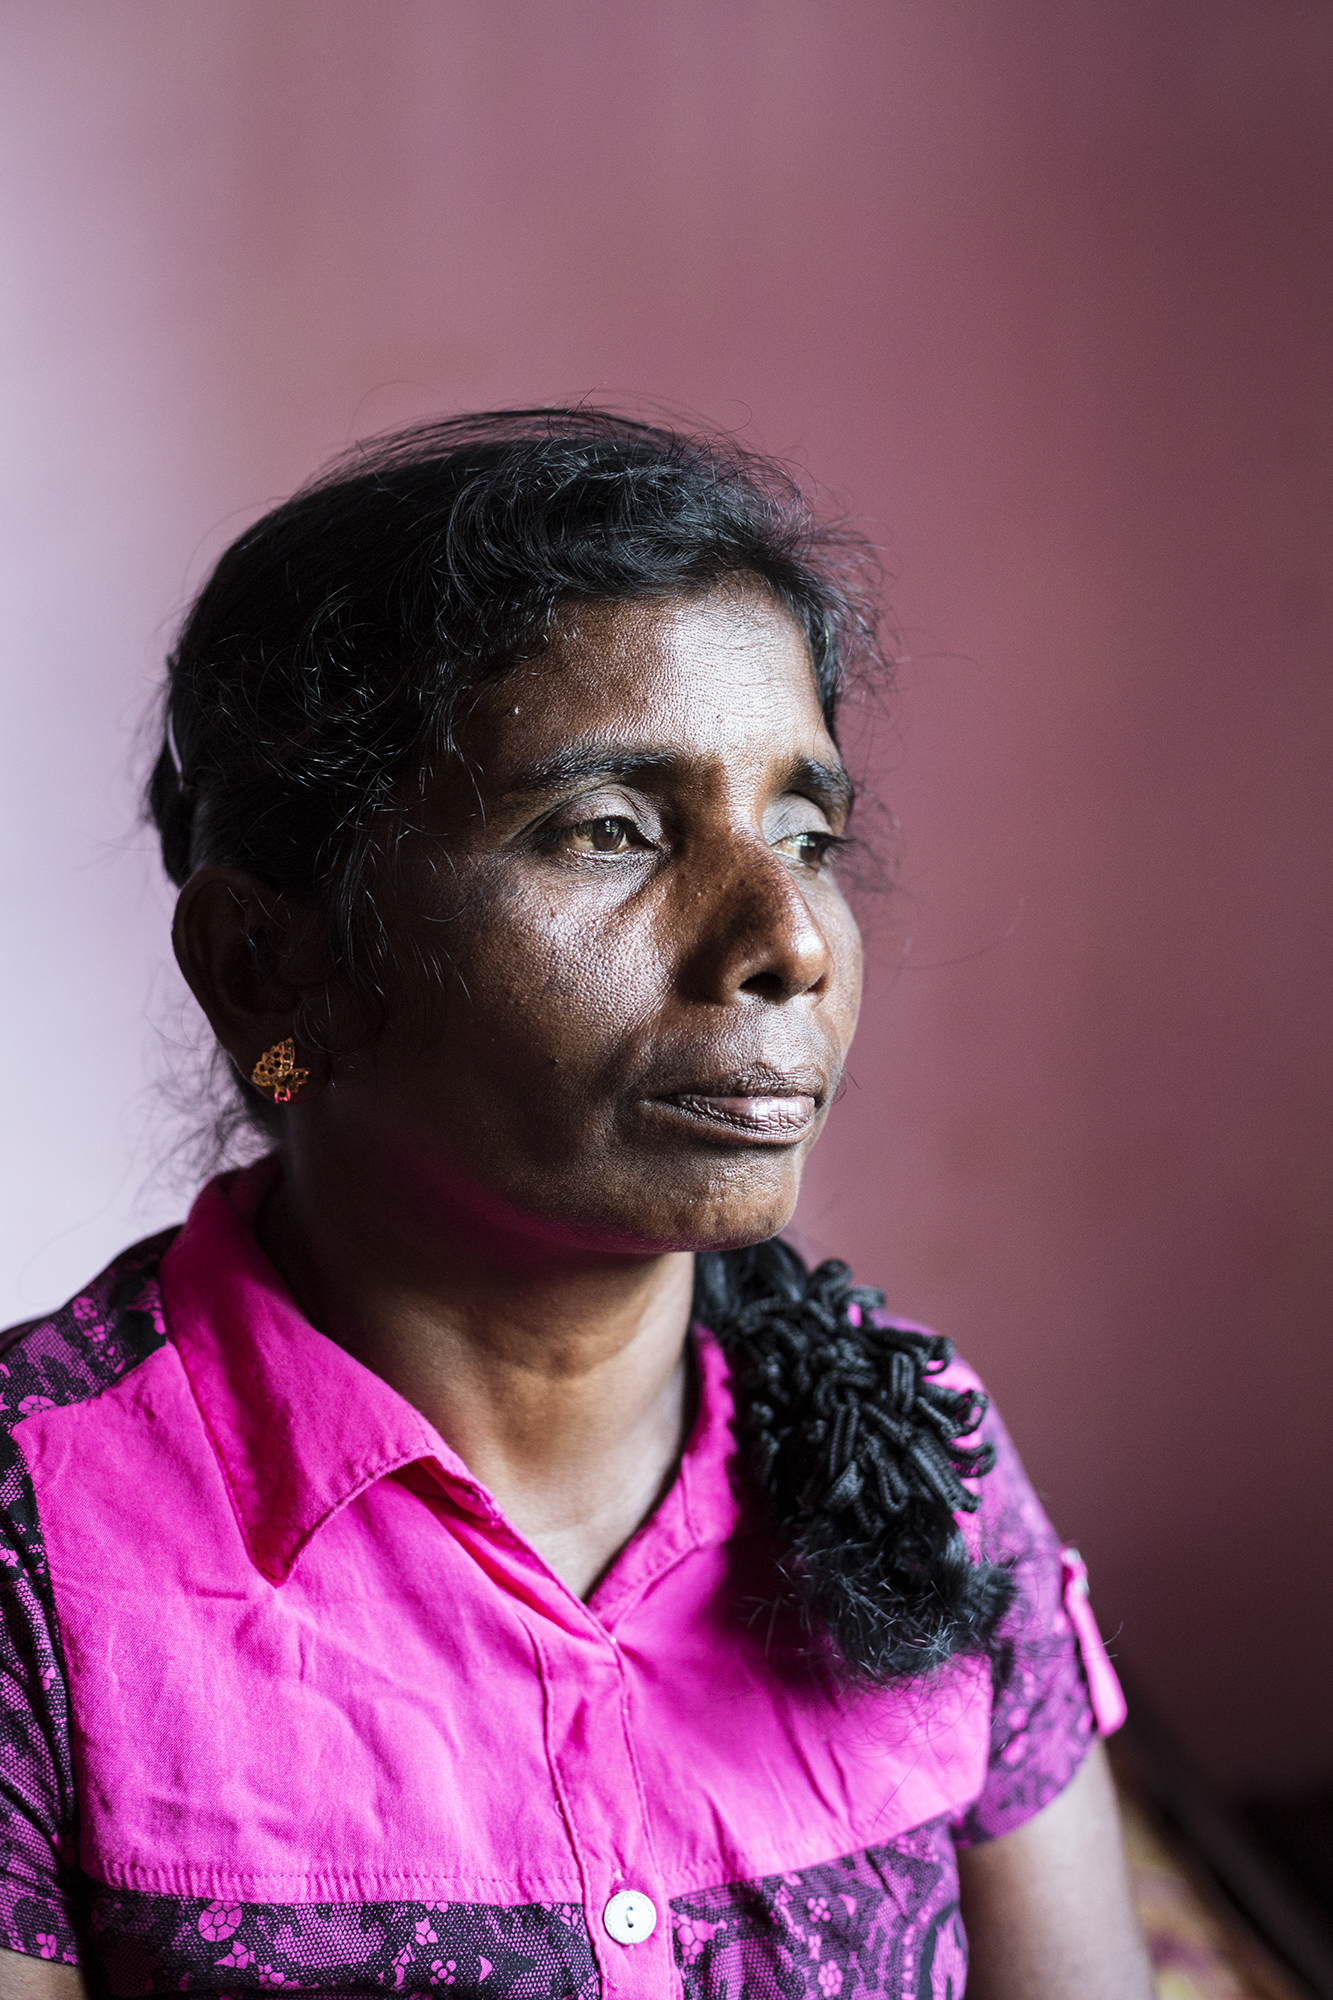 """""""The government needs to bring some sort of change and we need to be able to stand on our own feet and live in our own houses, but the situation is getting worse all the time. There is no security. We are all widows and the army guys come around to play games with us. They throw stones and sing mocking songs. Sometimes it's scary."""""""